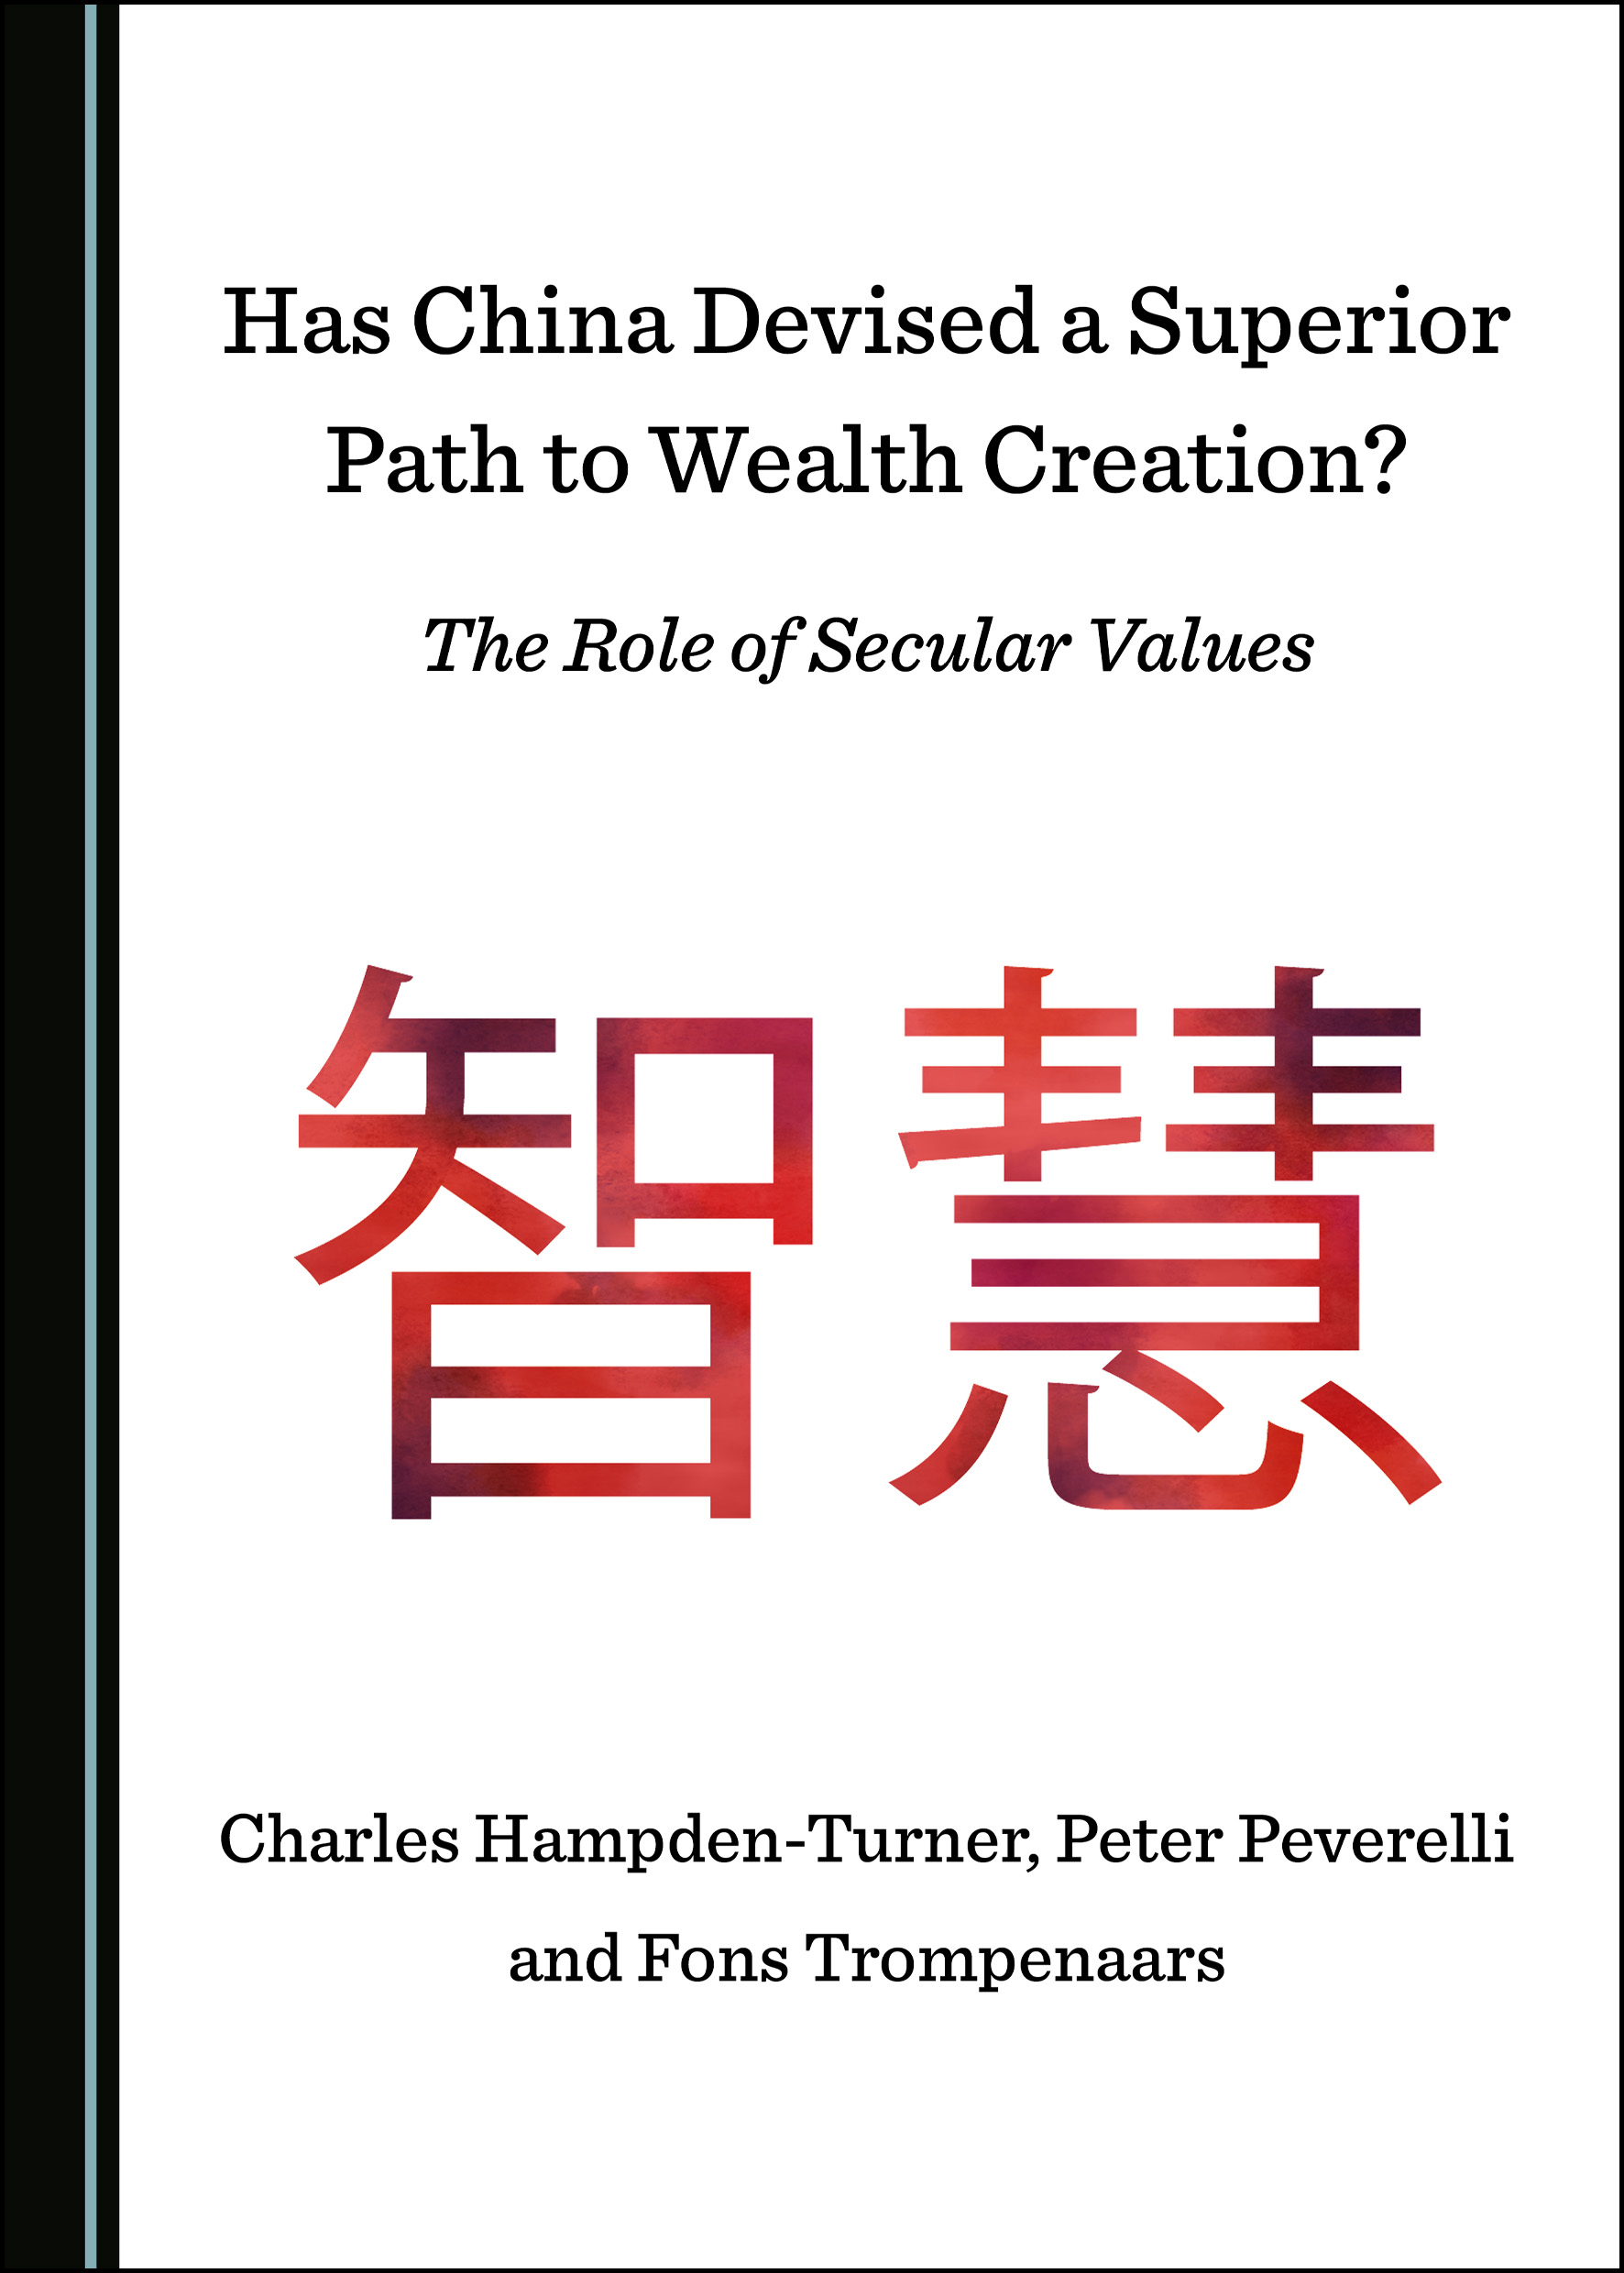 Has China Devised a Superior Path to Wealth Creation? The Role of Secular Values